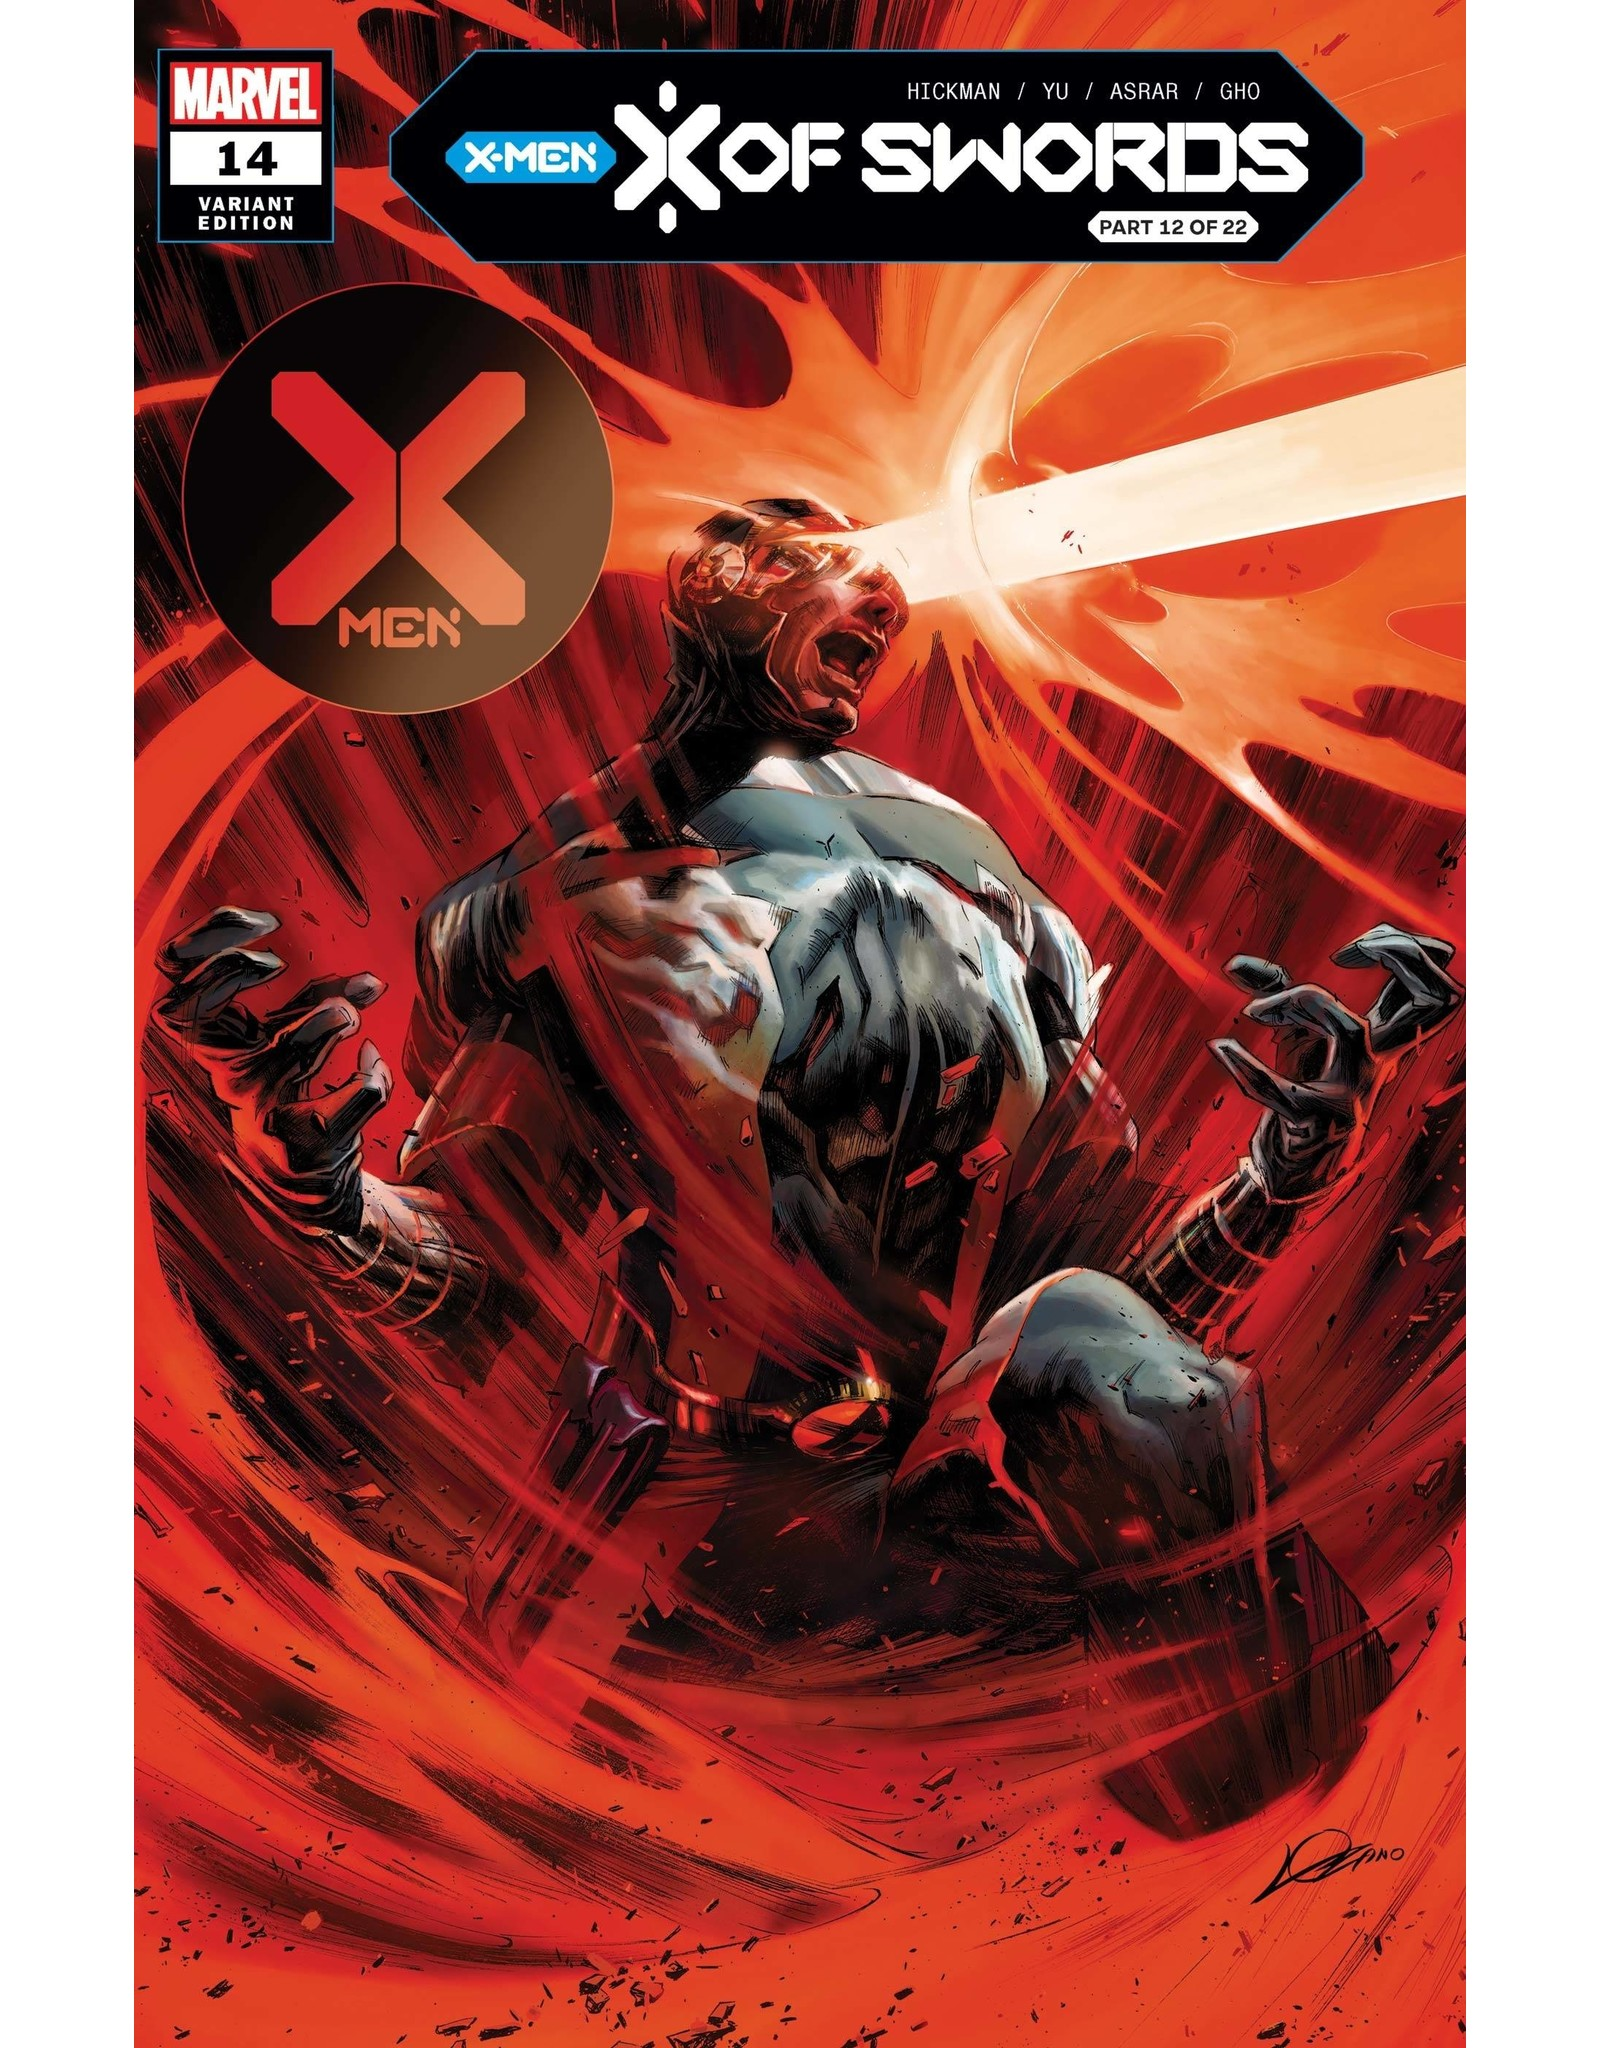 MARVEL COMICS X-MEN #14 LOZANO VAR XOS